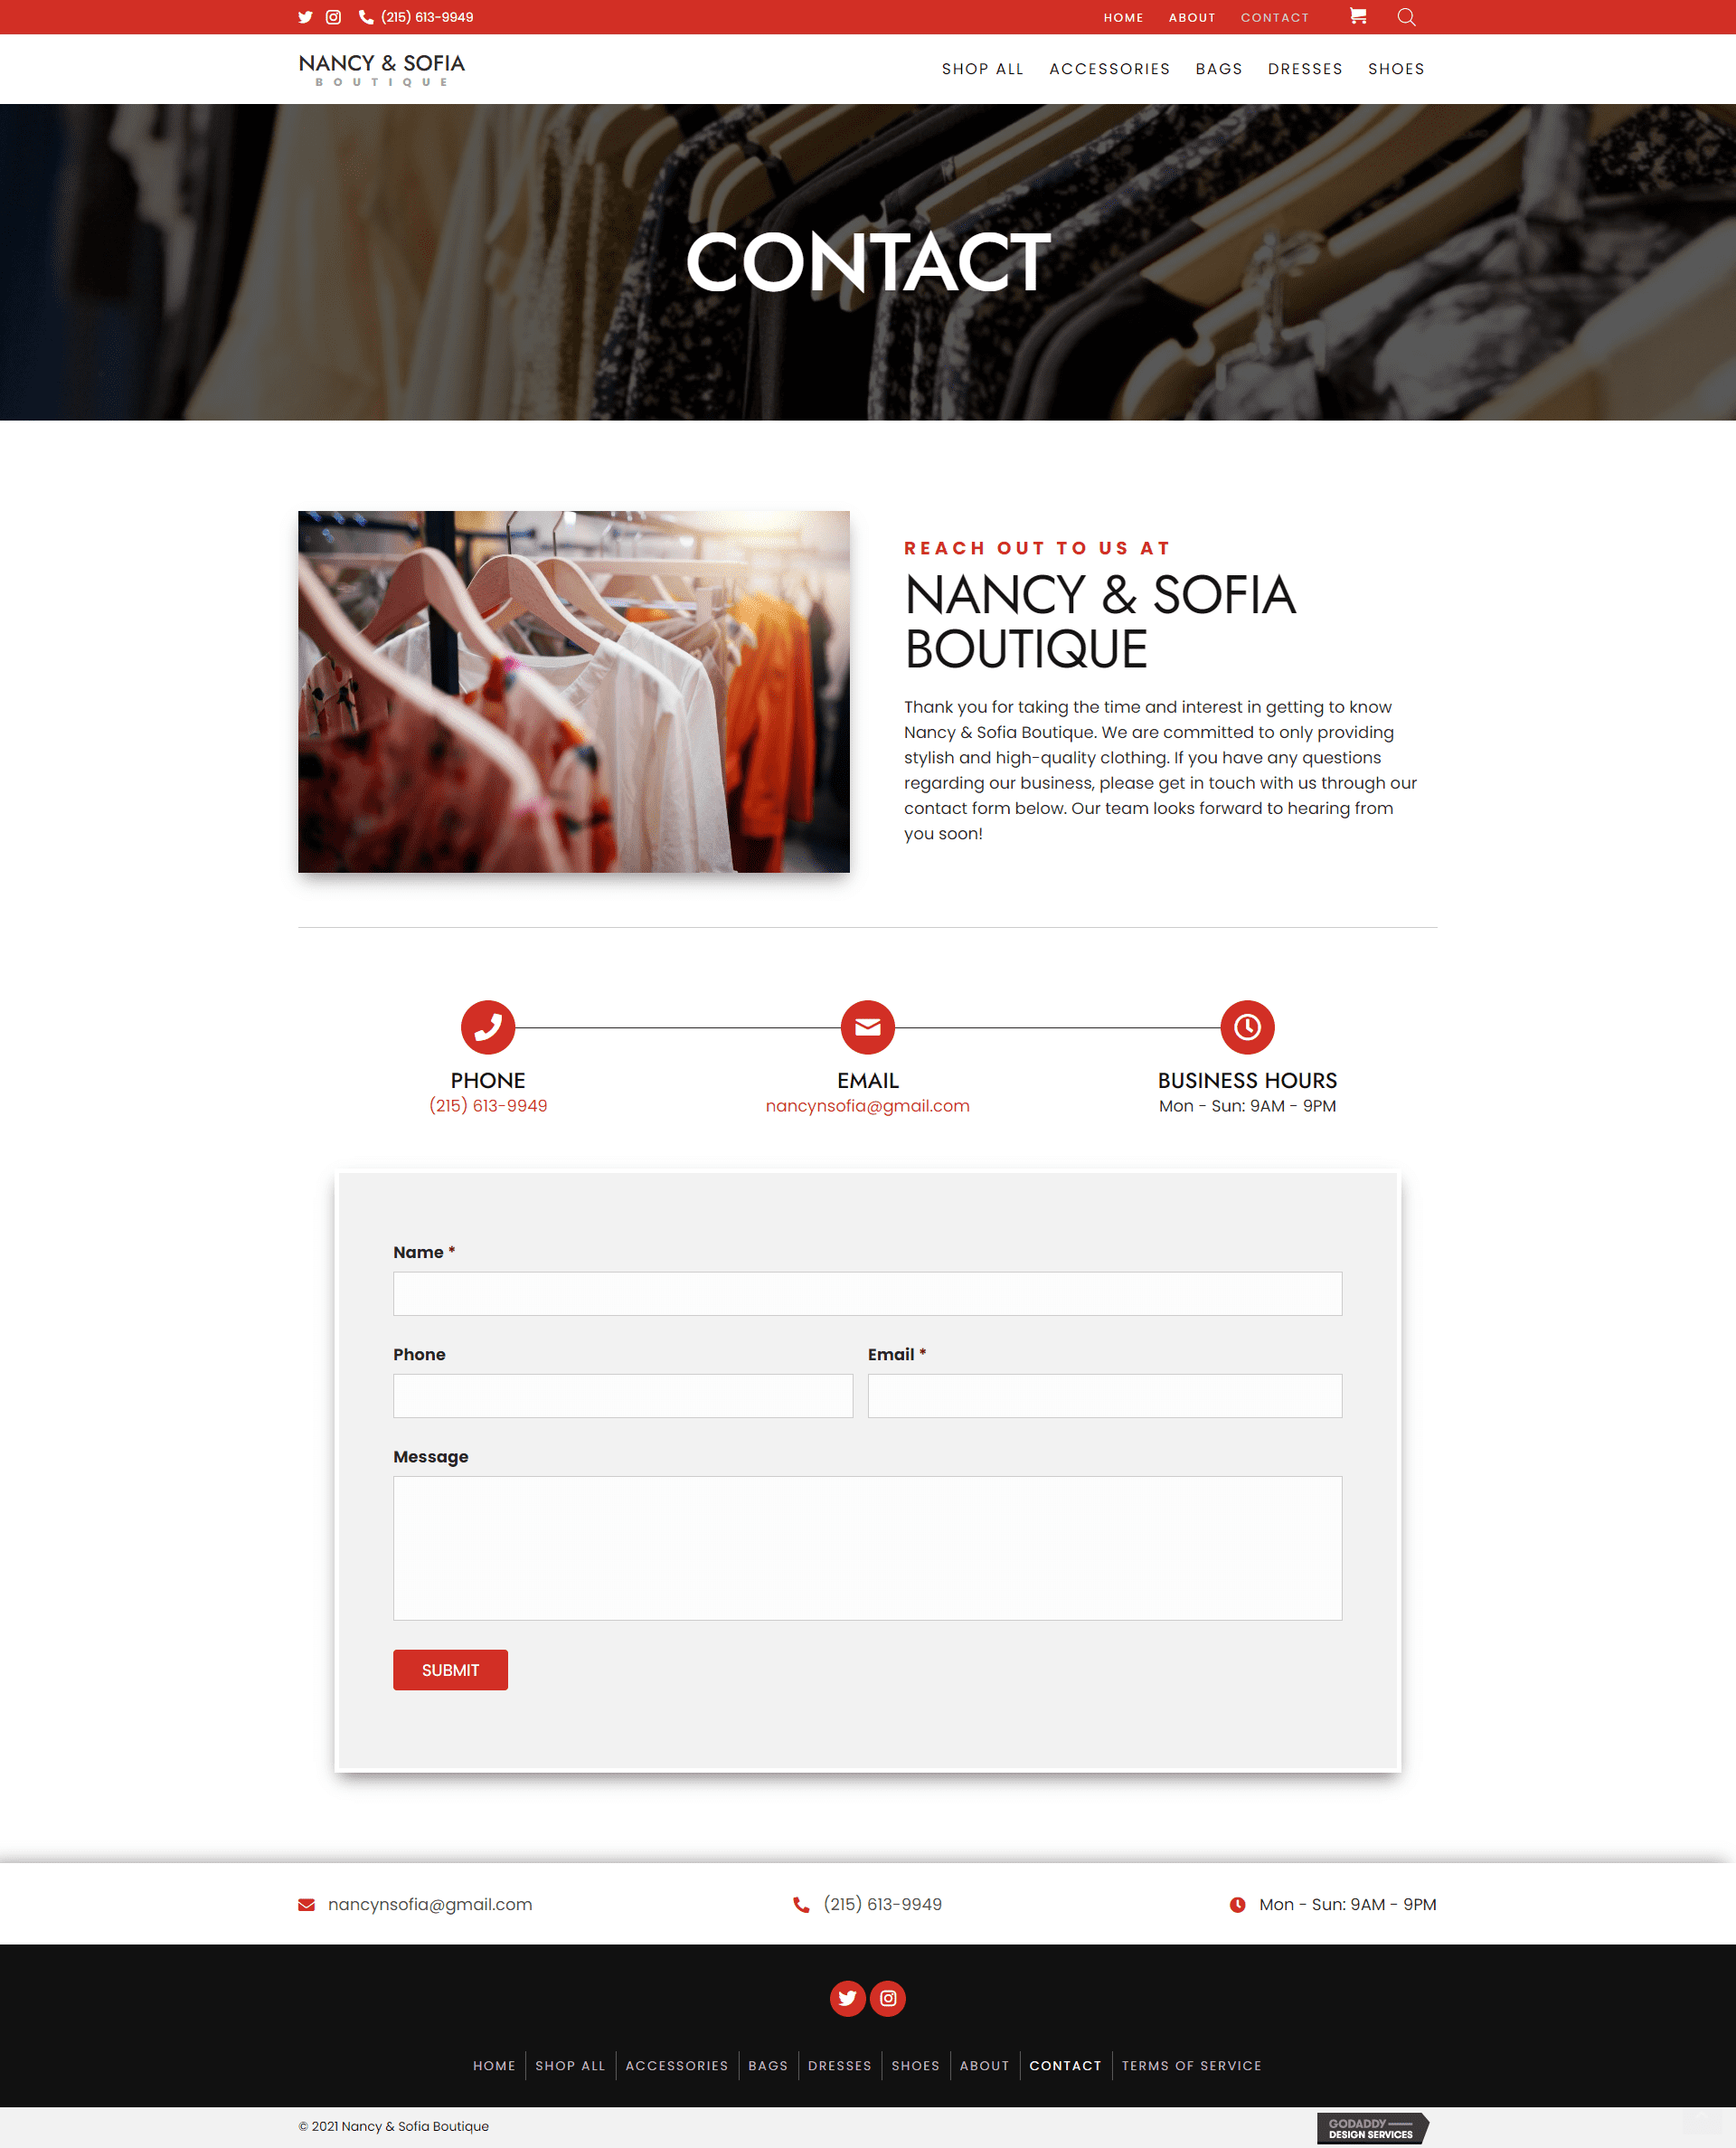 Nancy & Sofia Boutique Contact Page